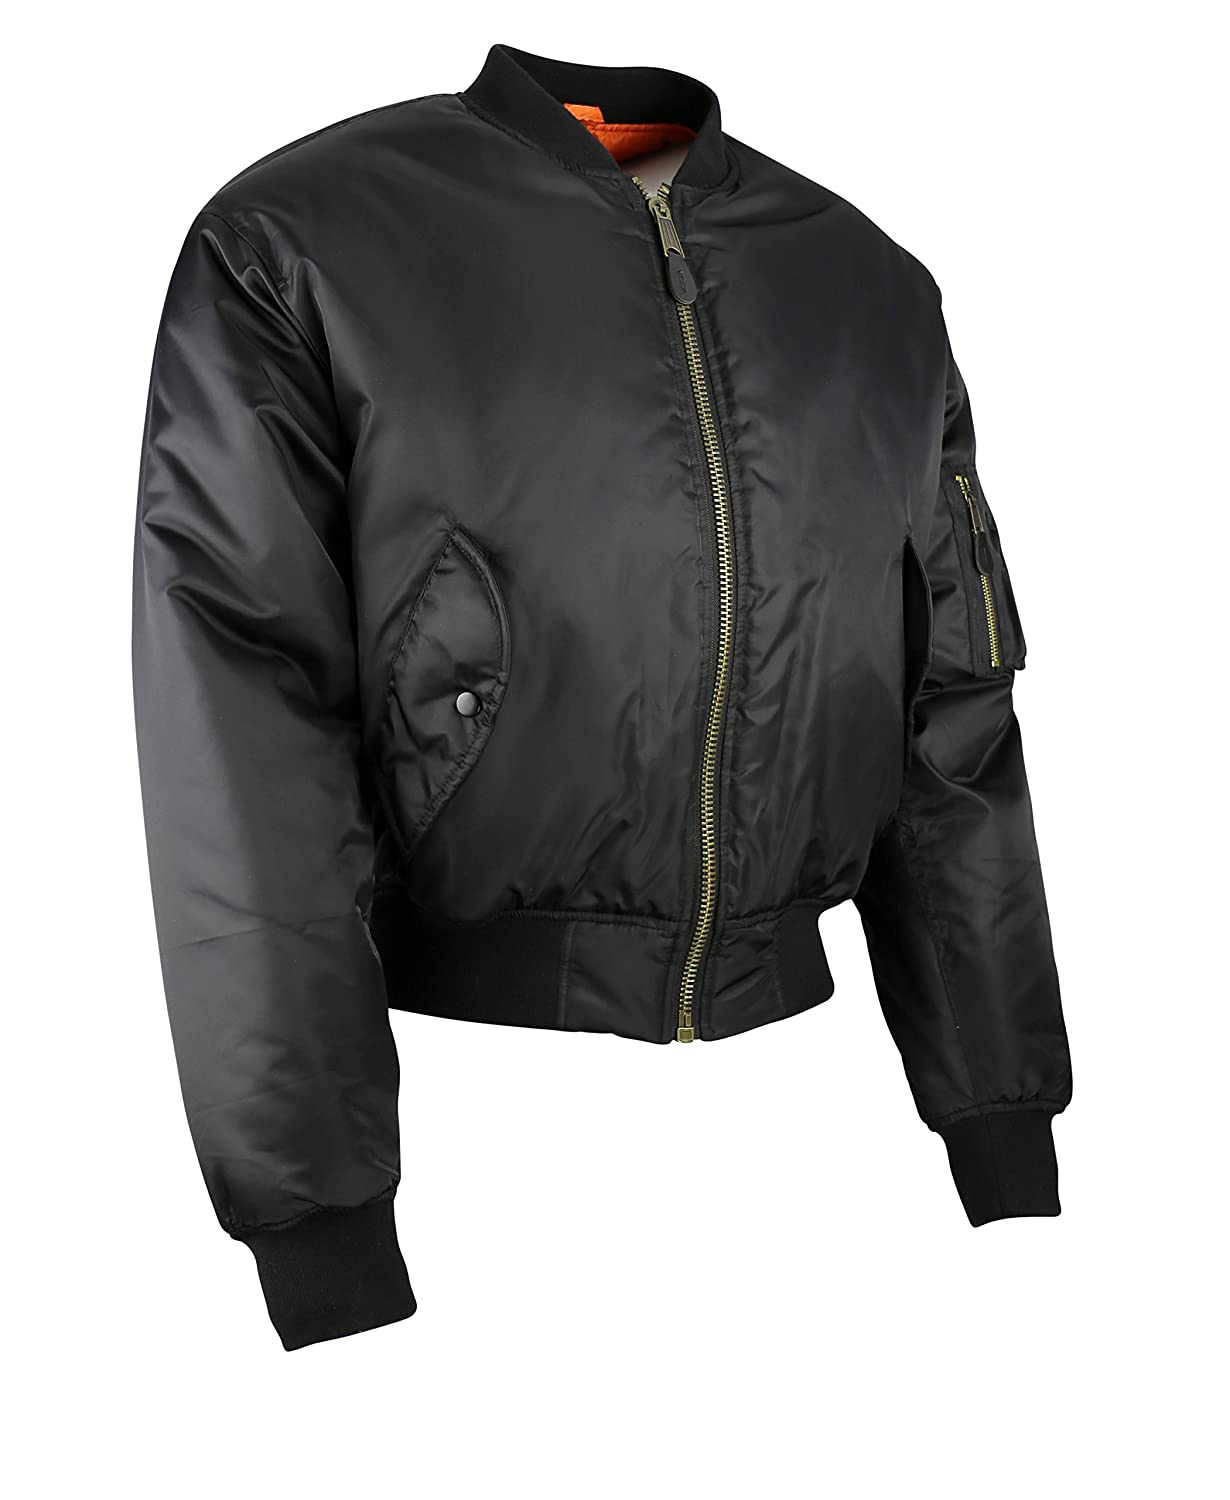 8ae8ca2bf7e MA1 Security Bomber Jacket - Tactical, Military, Police, Security ...